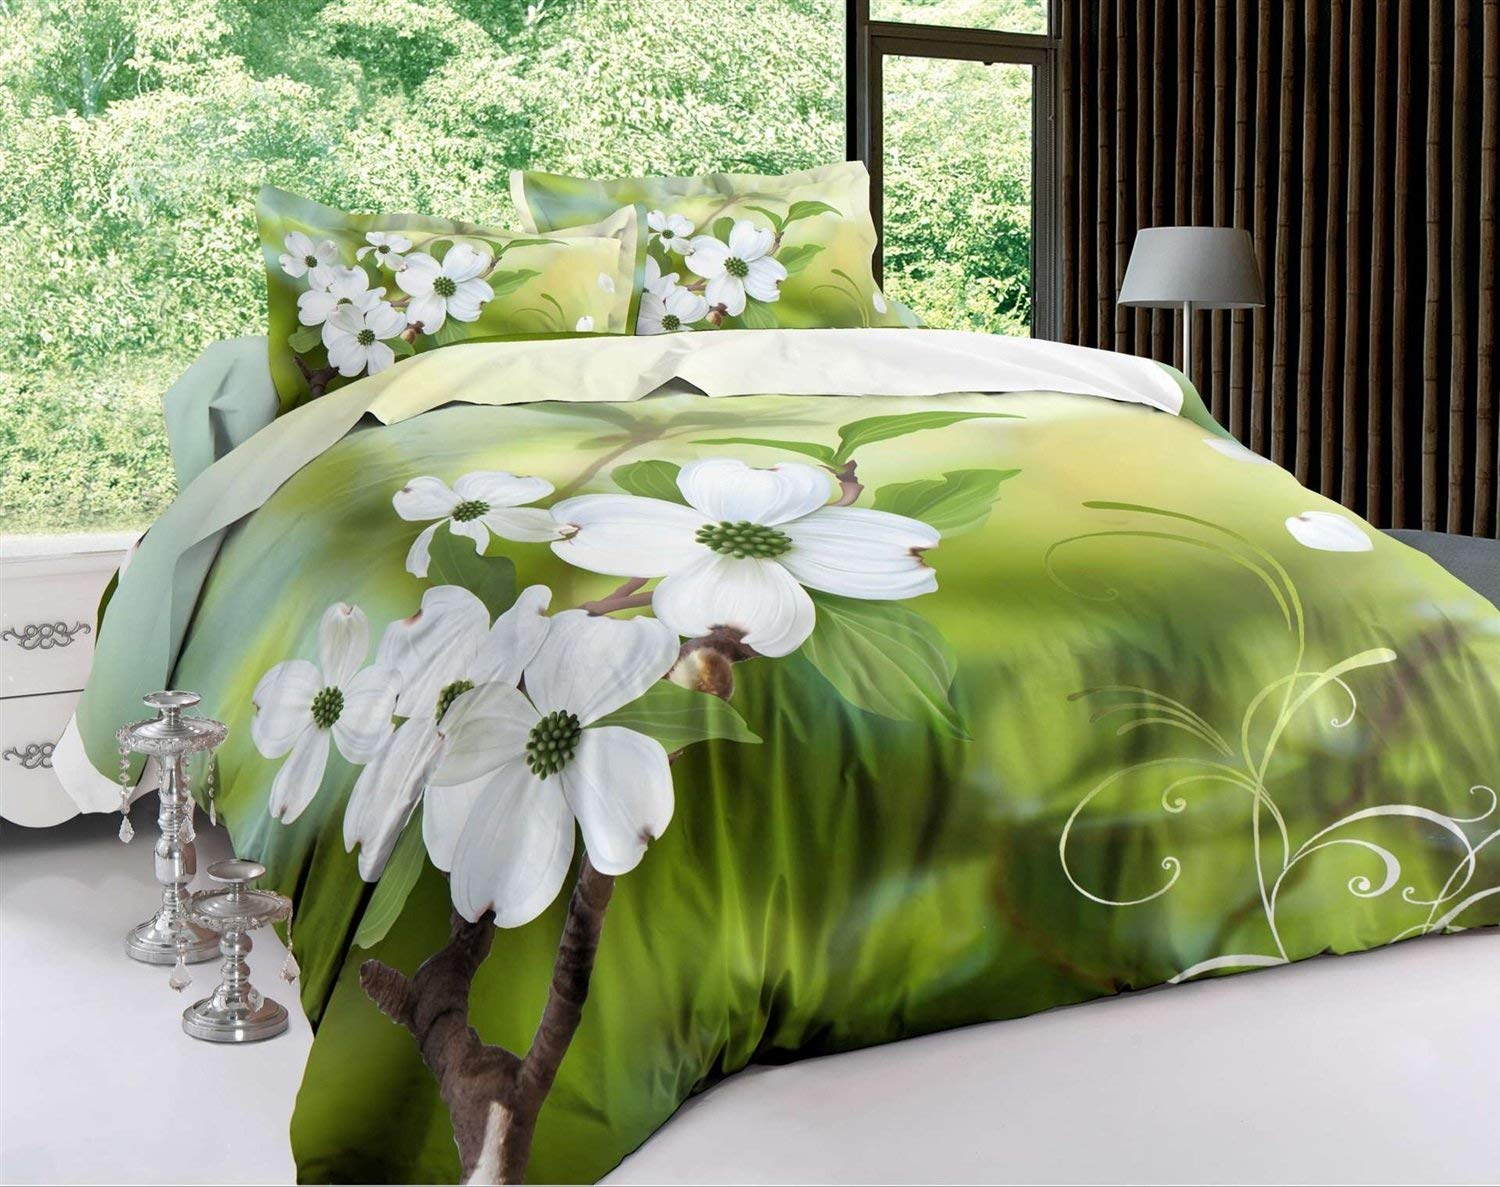 Longji Home Jasmine Flower bedding Sets,3D Oil Painting Bed In A Bag Twin queen king size (Size : Queen(3Pcs/Set))